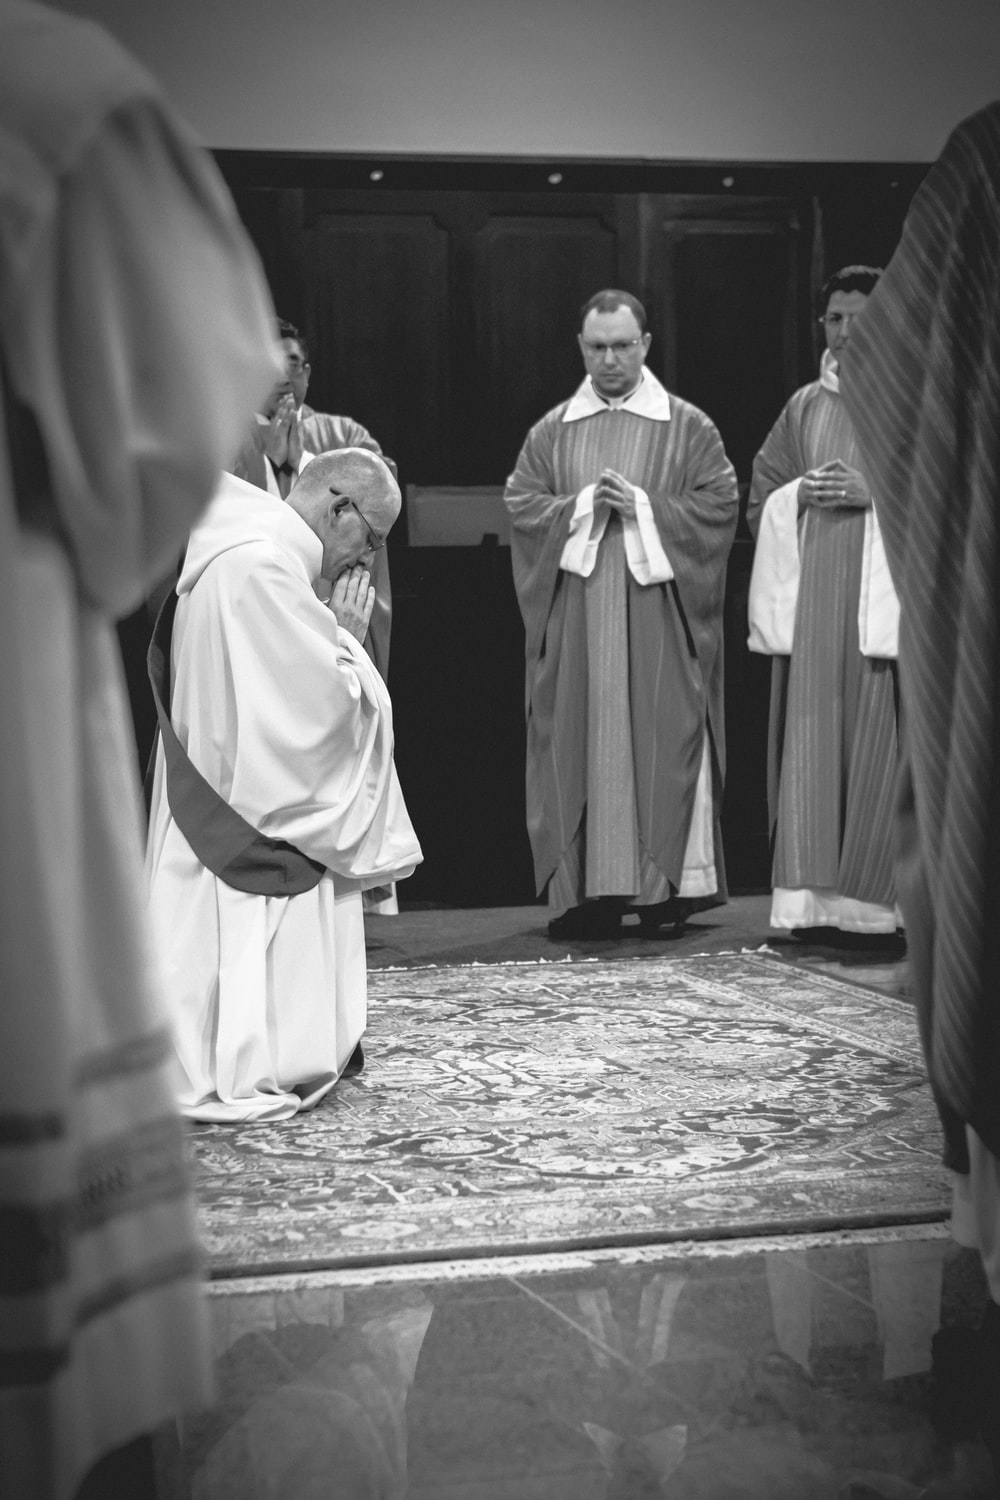 grayscale photo of priest kneeling on carpet